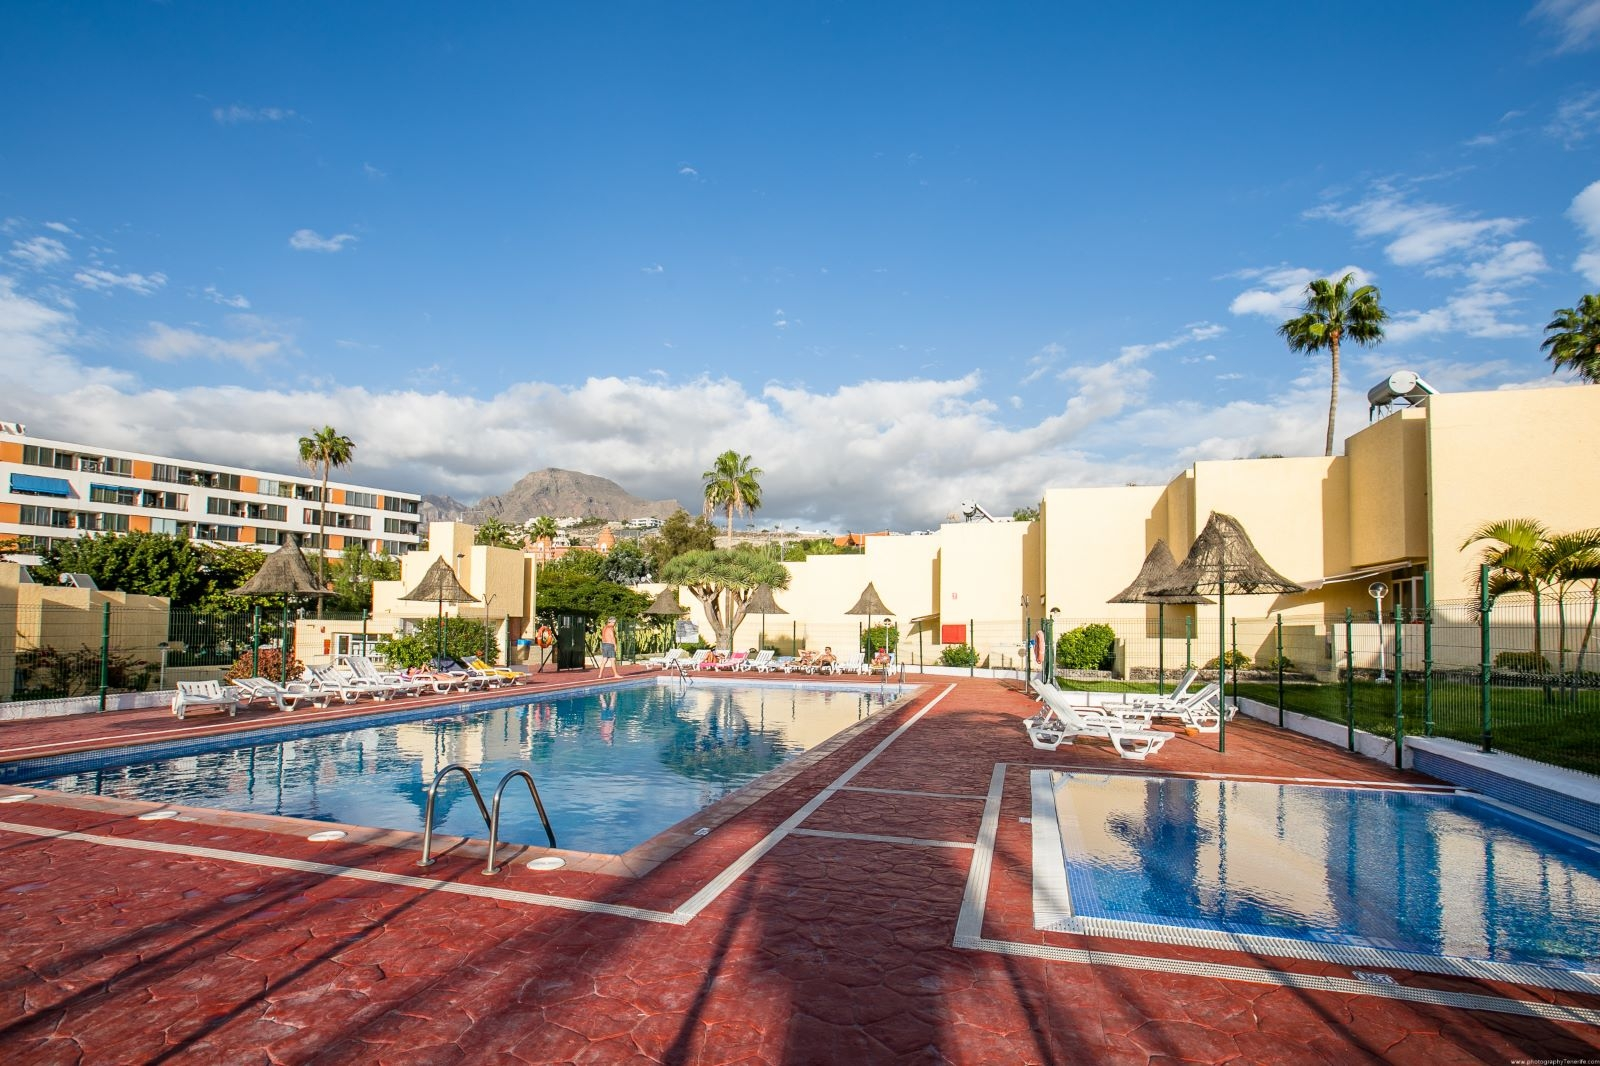 Properties for Sale in Tenerife, Canary Islands, Spain | SylkWayStar Real Estate. 1 bedroom apartment El Cortijo, Las Americas. Image-22486